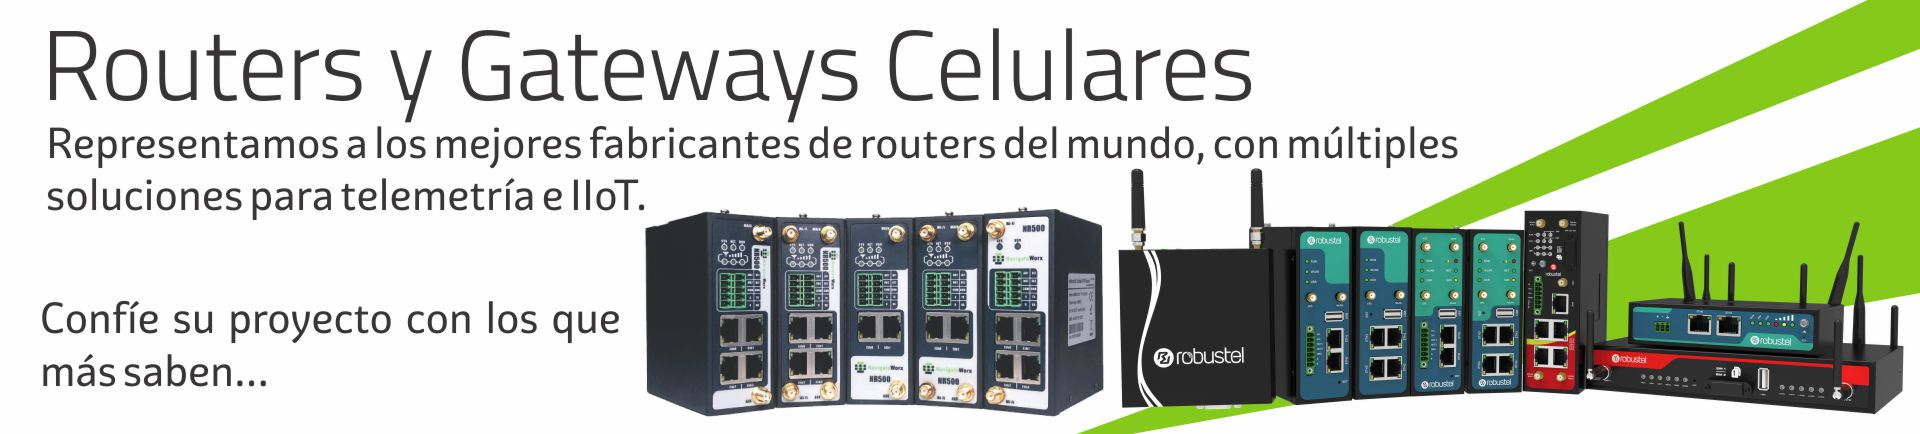 Routers y gateways